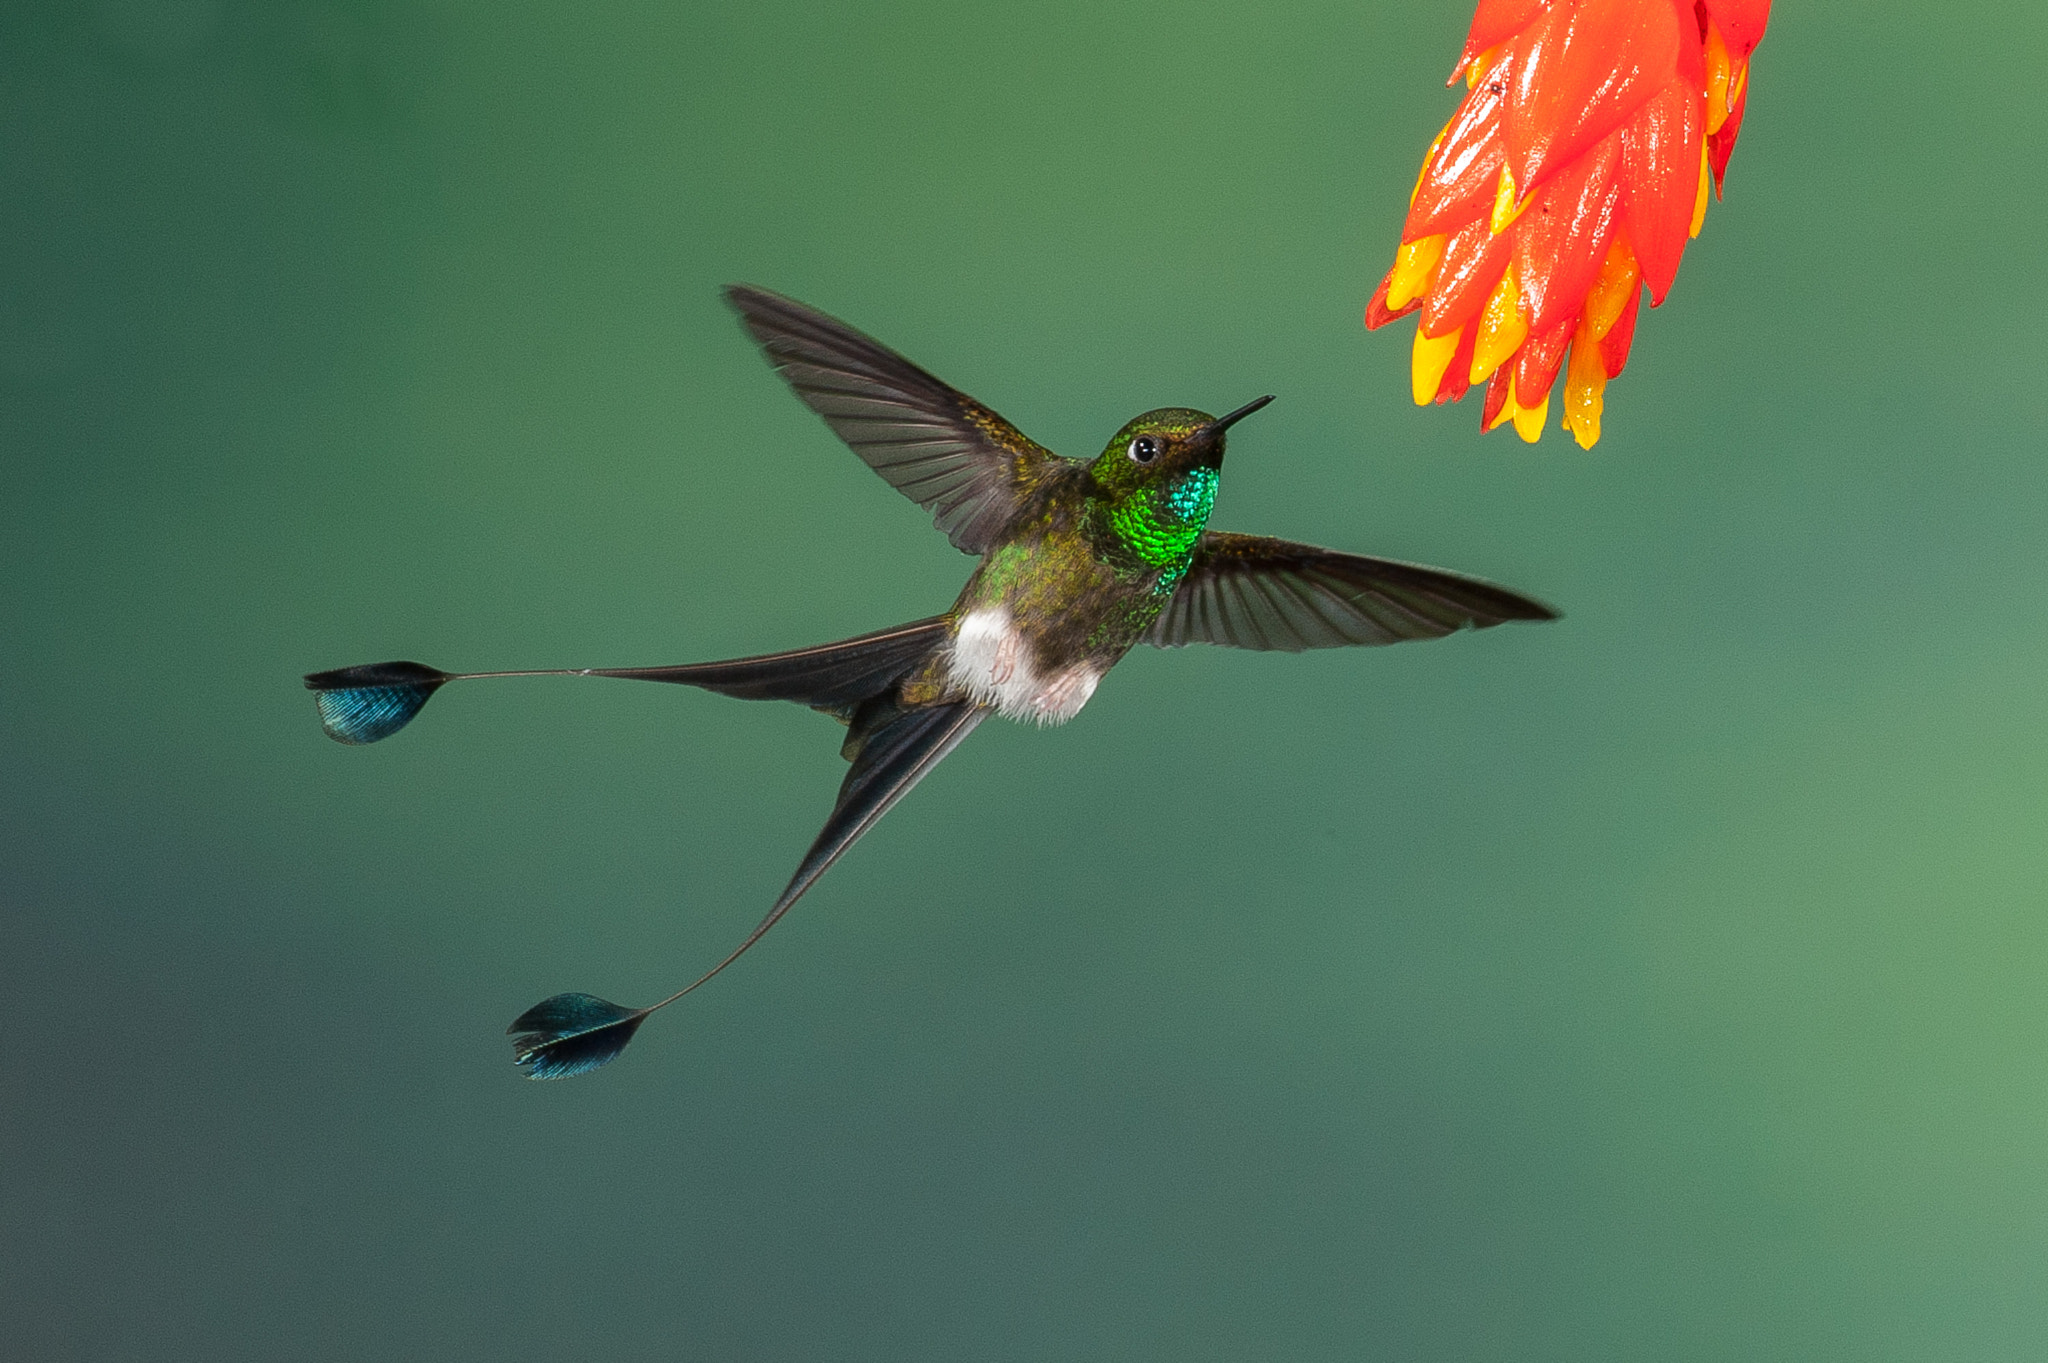 Photograph In flight by Gorazd Golob on 500px